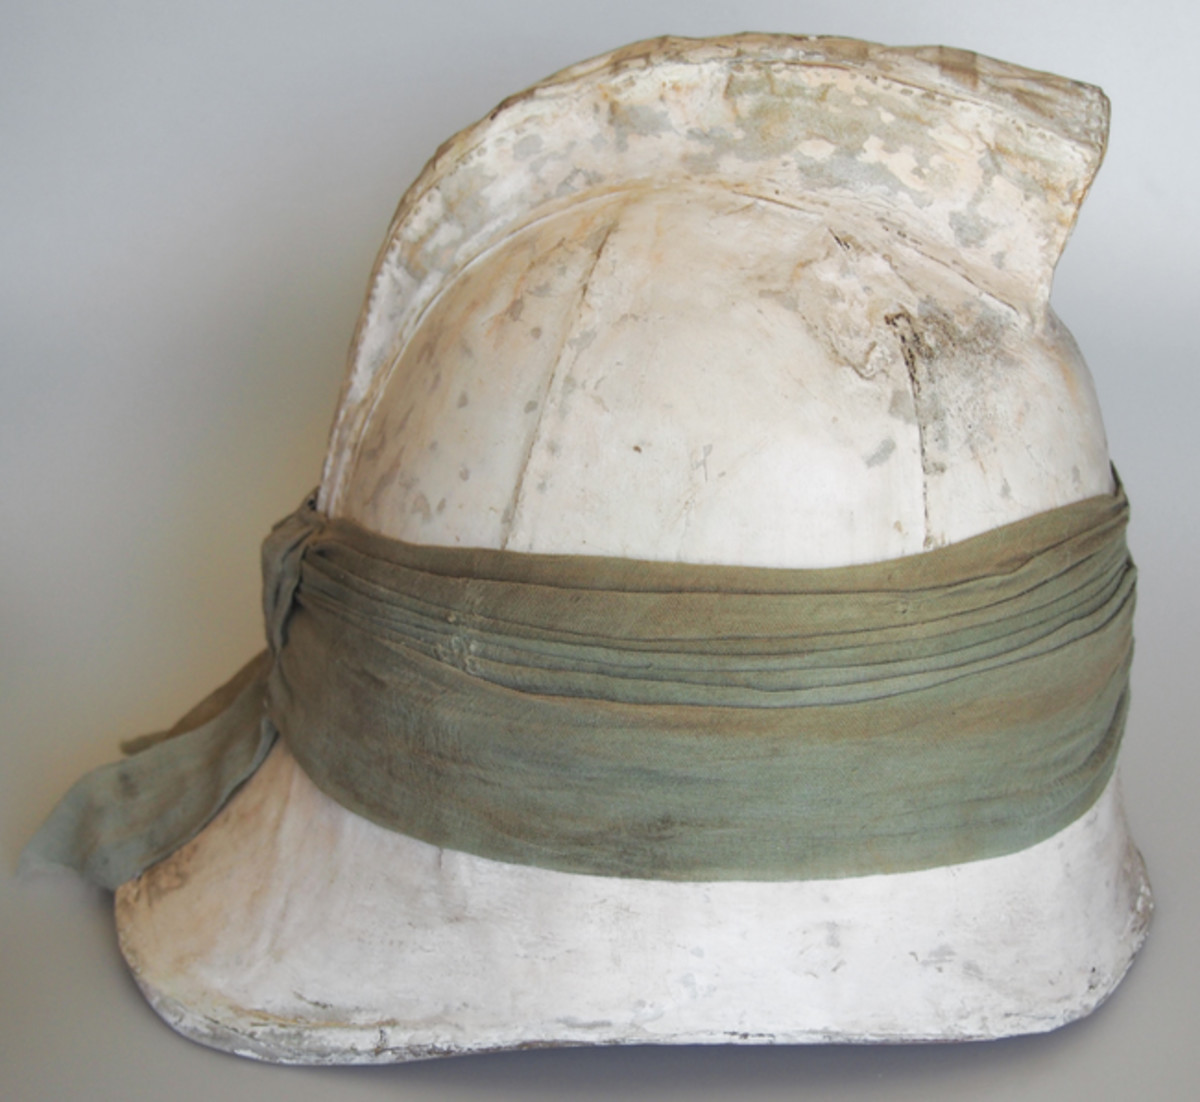 The helmet was fitted with a cloth puggaree around the helmet but this was likely to help denote the unit of the soldier.